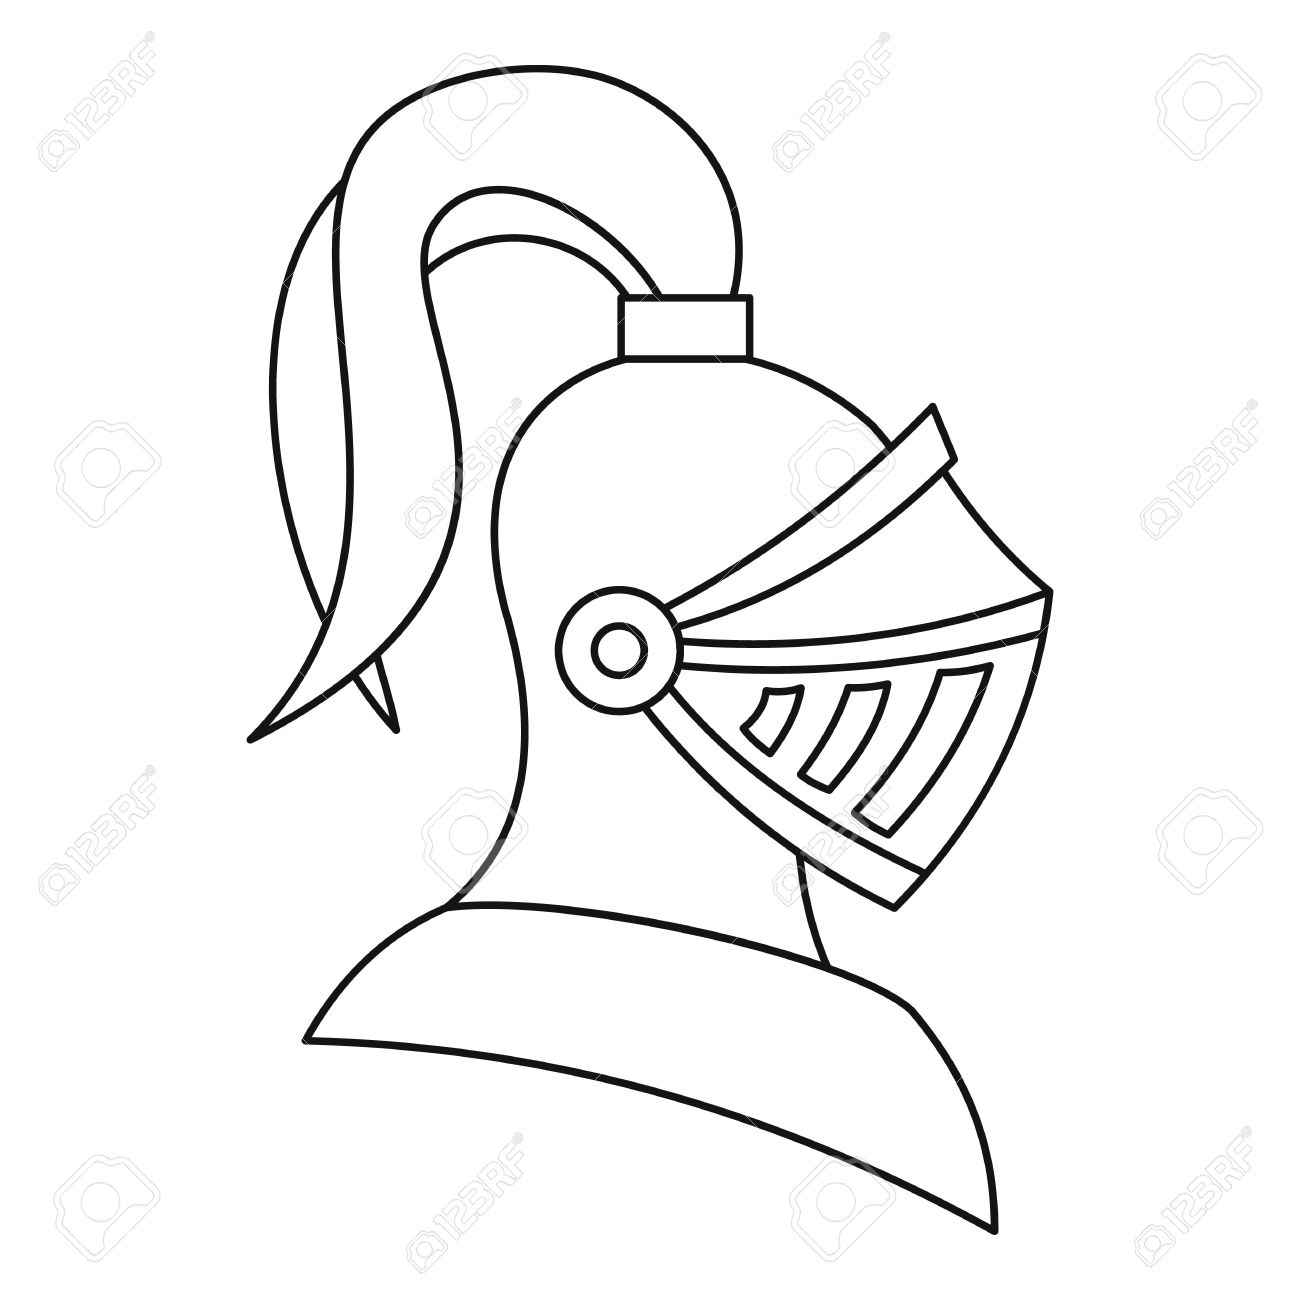 Knight Helmet Clipart Black And White.